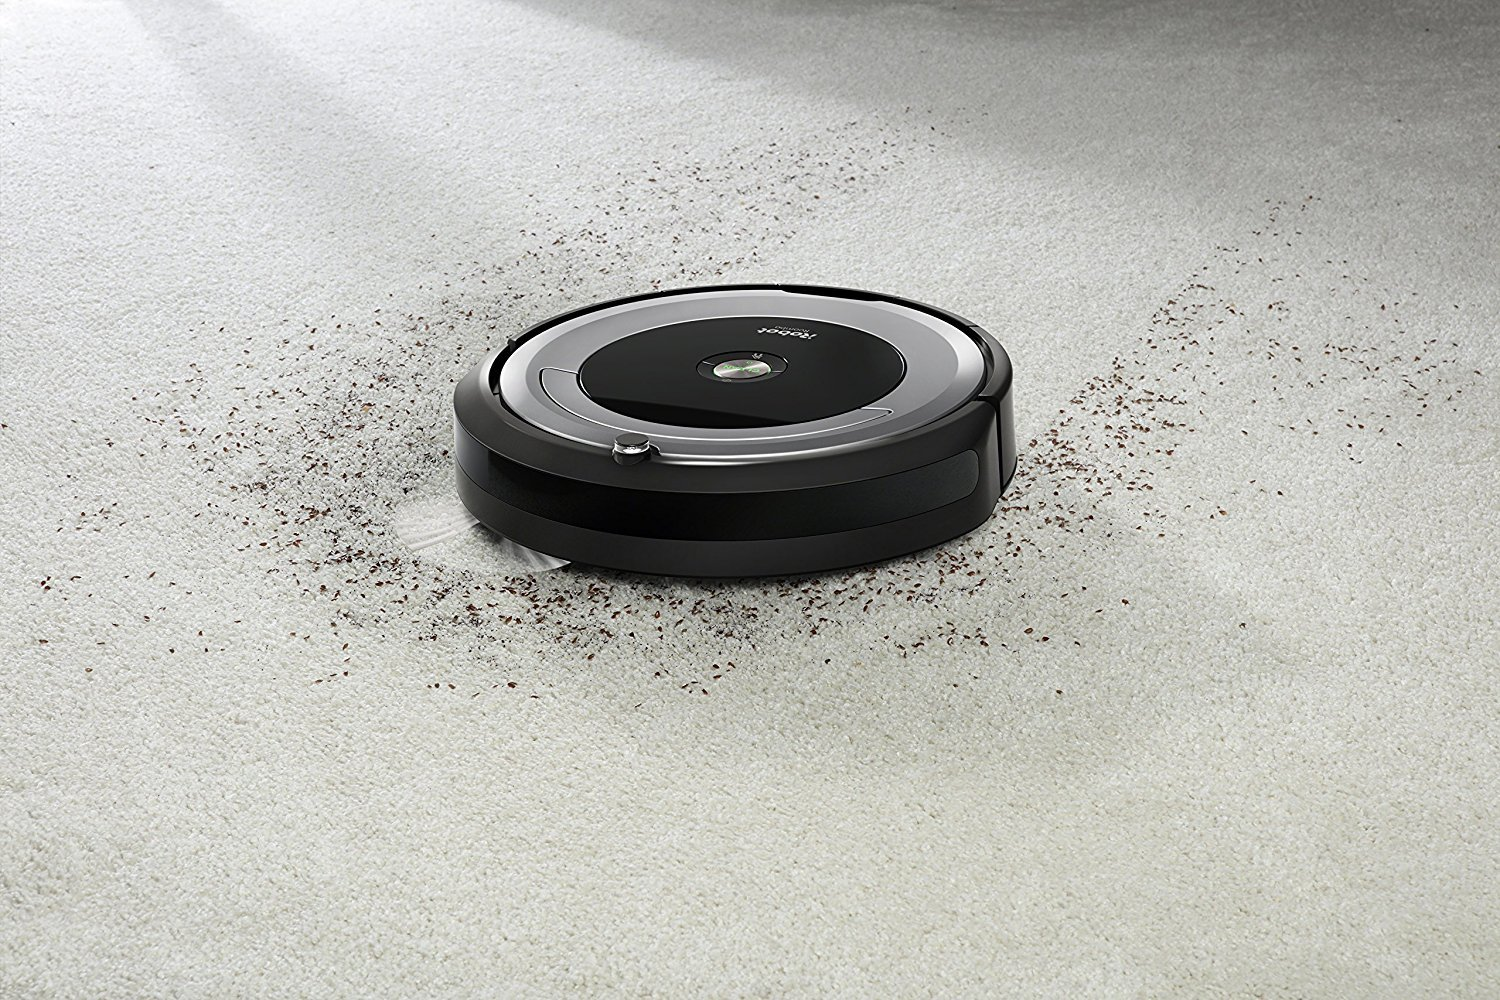 iRobot Roomba 690 Wi-Fi Connected Robotic Vacuum Cleaner + 1 Dual Mode Virtual Wall Barrier (With Batteries) + Extra Filter + More by iRobot (Image #2)